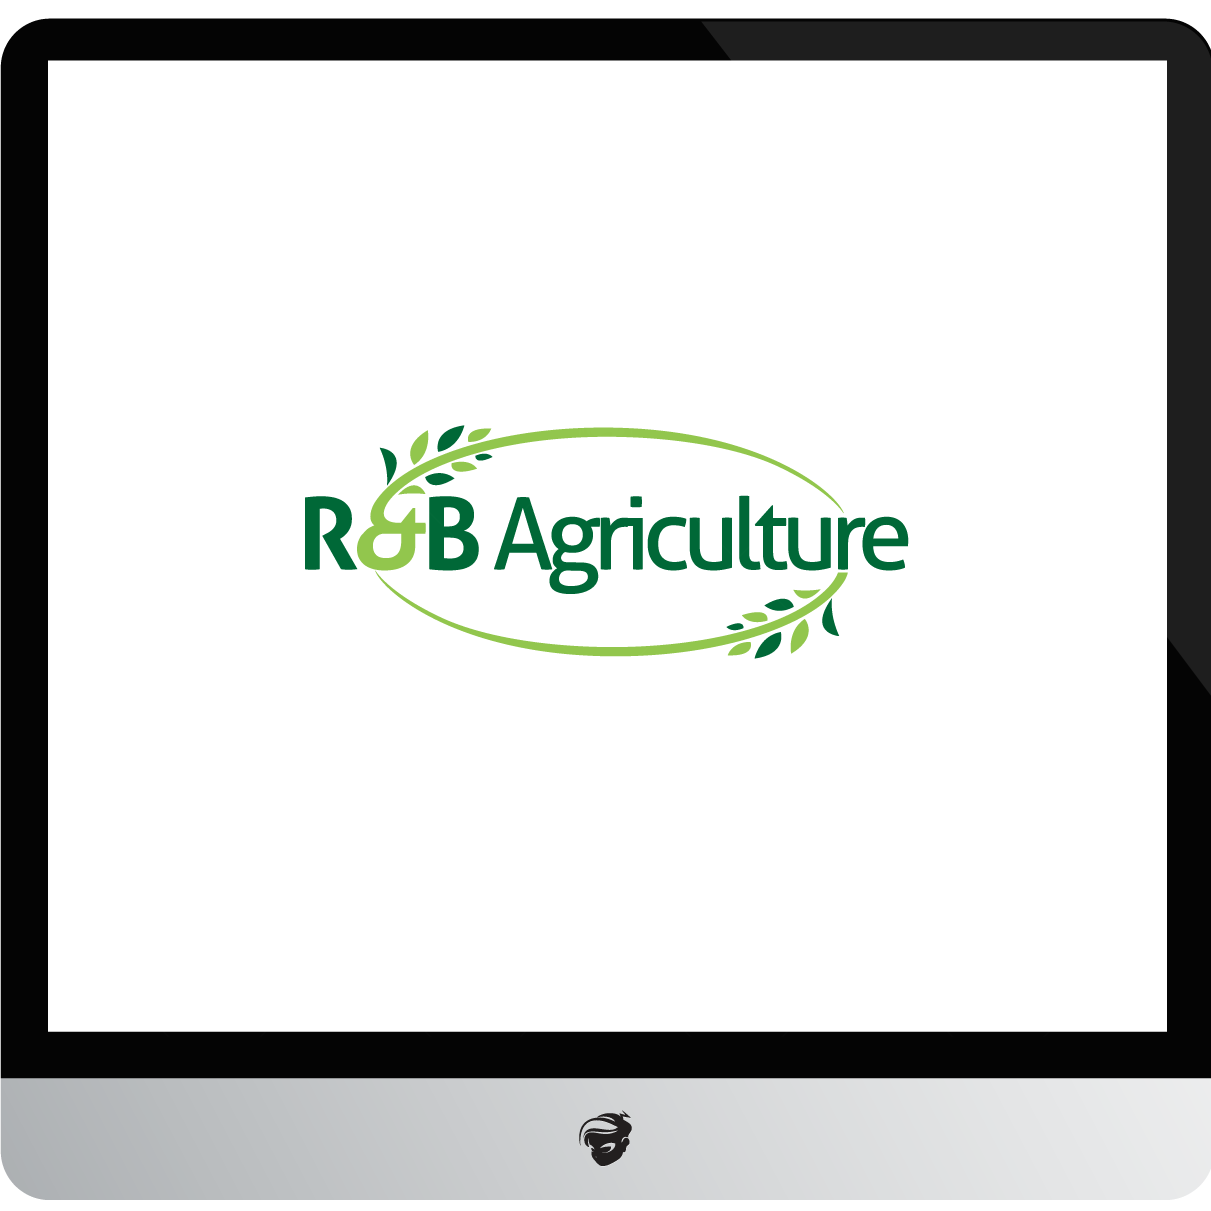 Logo Design by zesthar - Entry No. 12 in the Logo Design Contest Captivating Logo Design for R & B Agriculture.